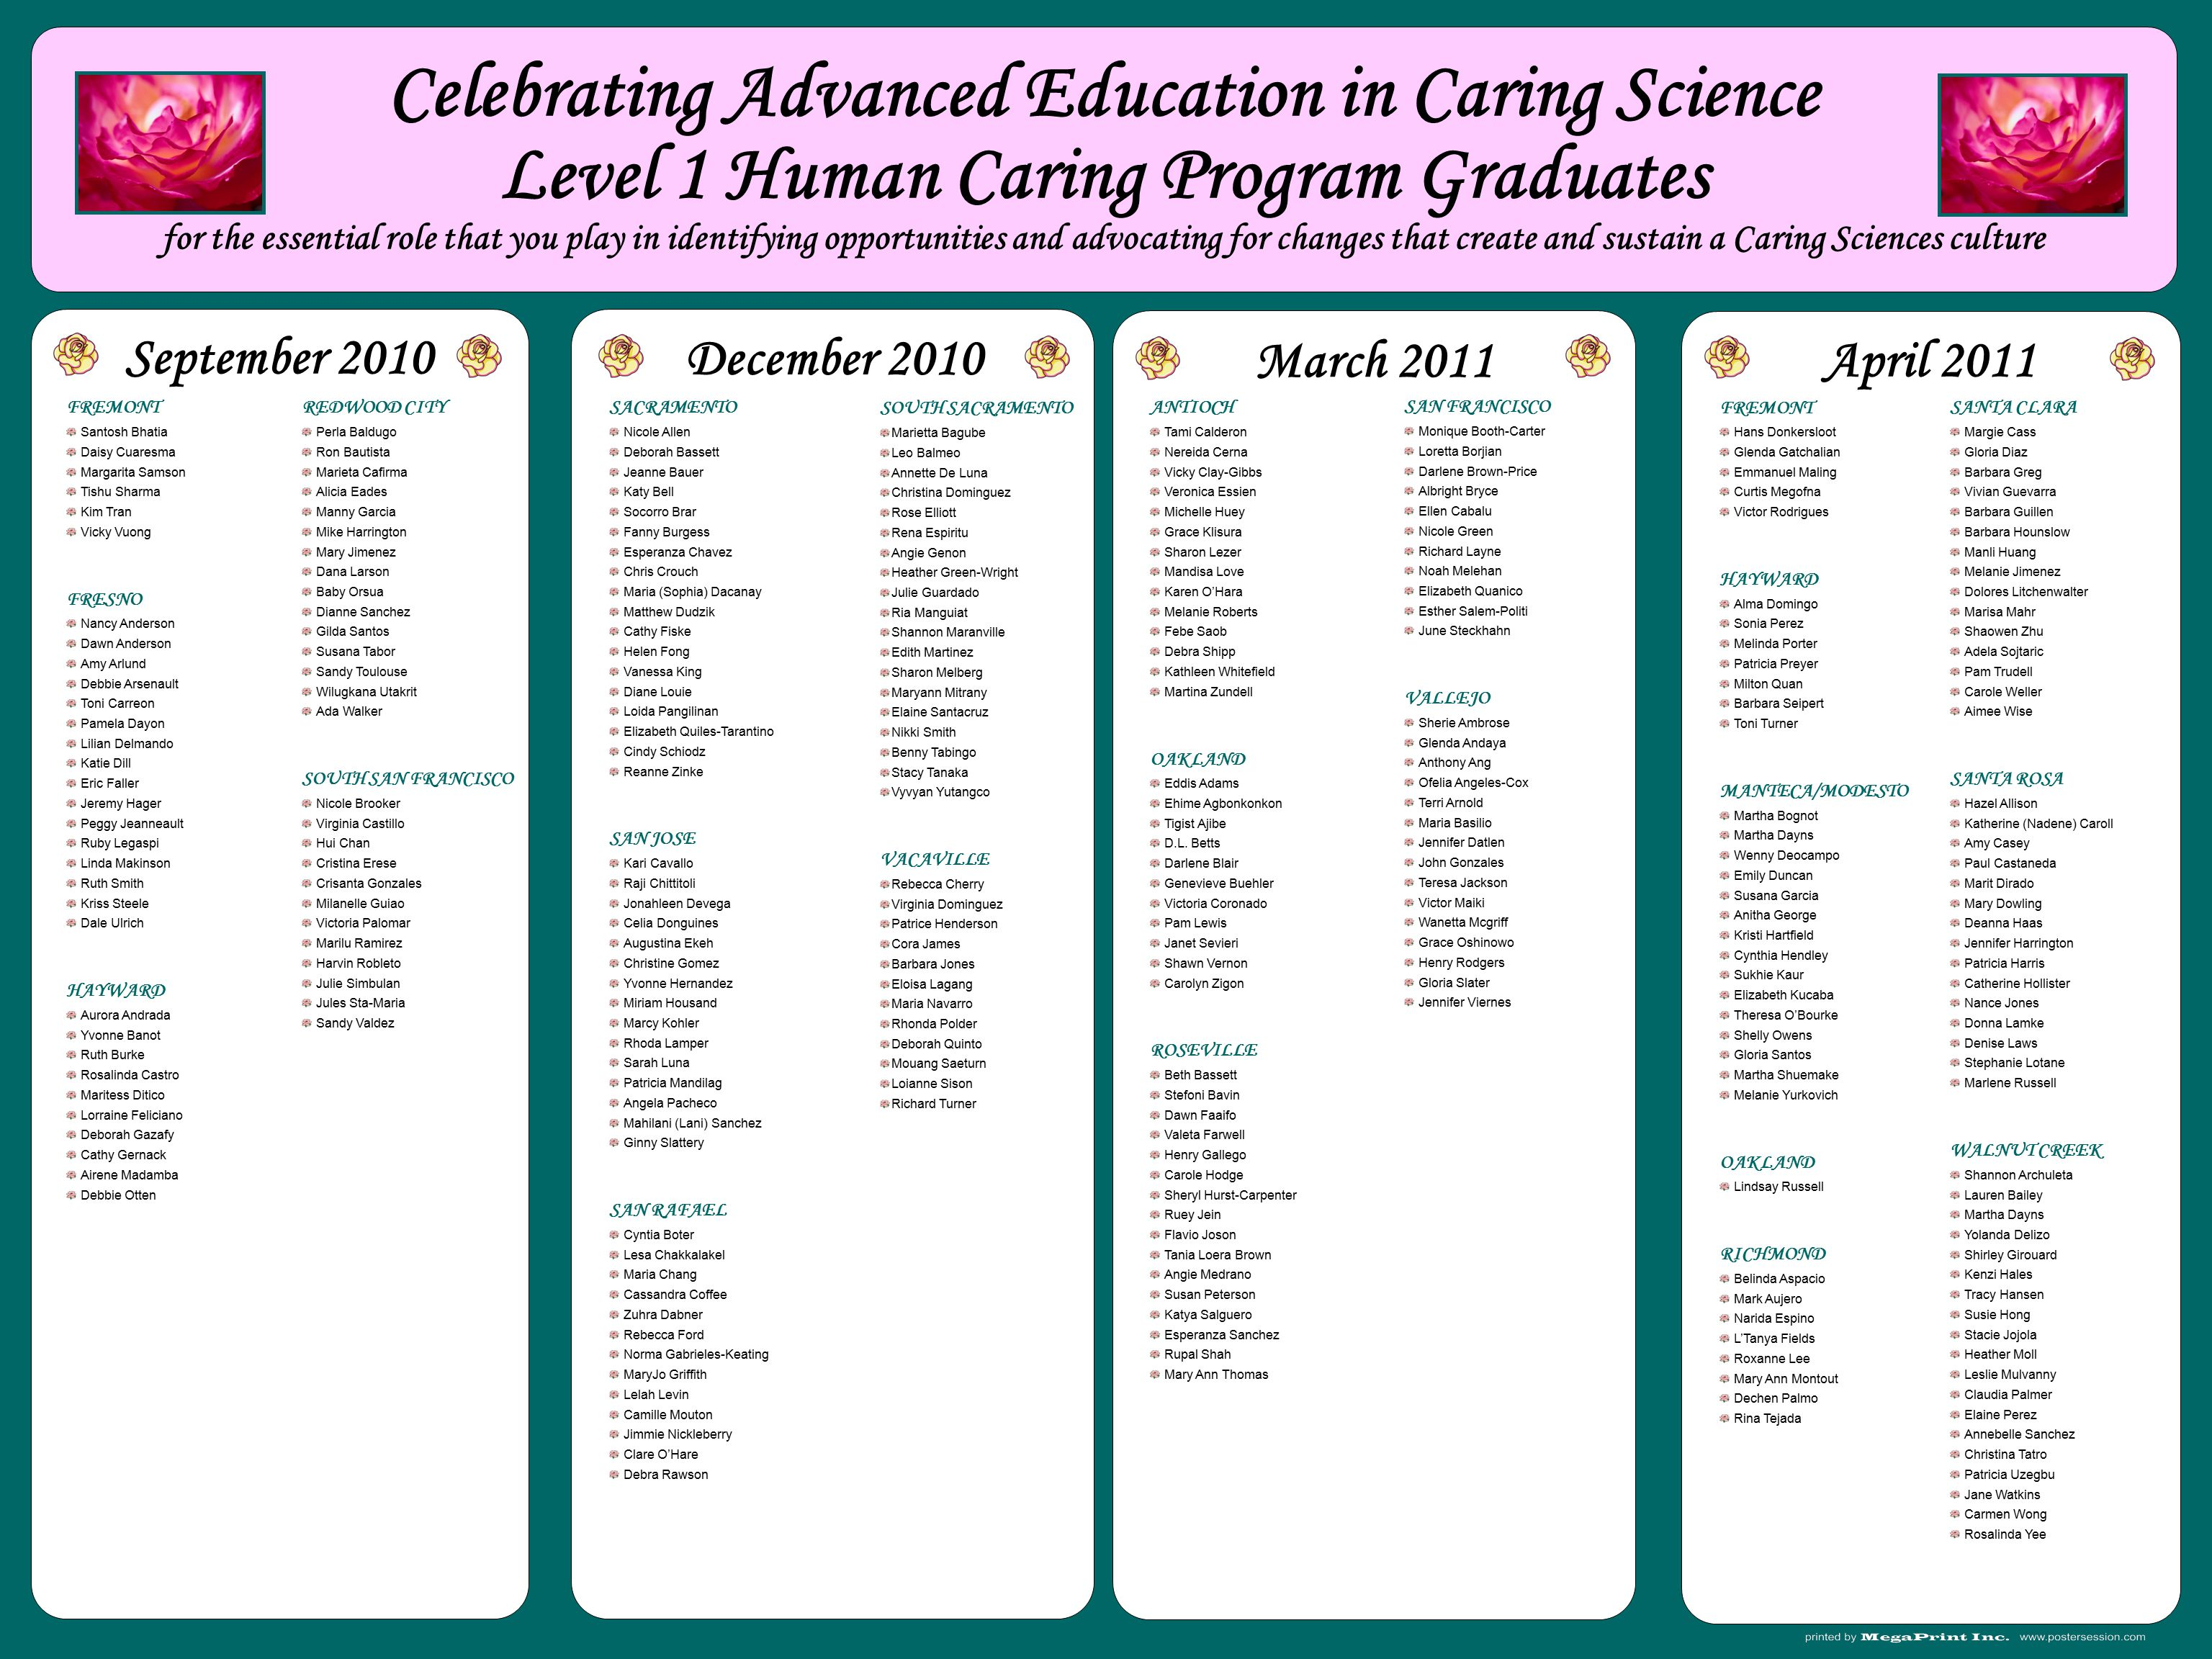 Celebrating Advanced Education in Caring Science